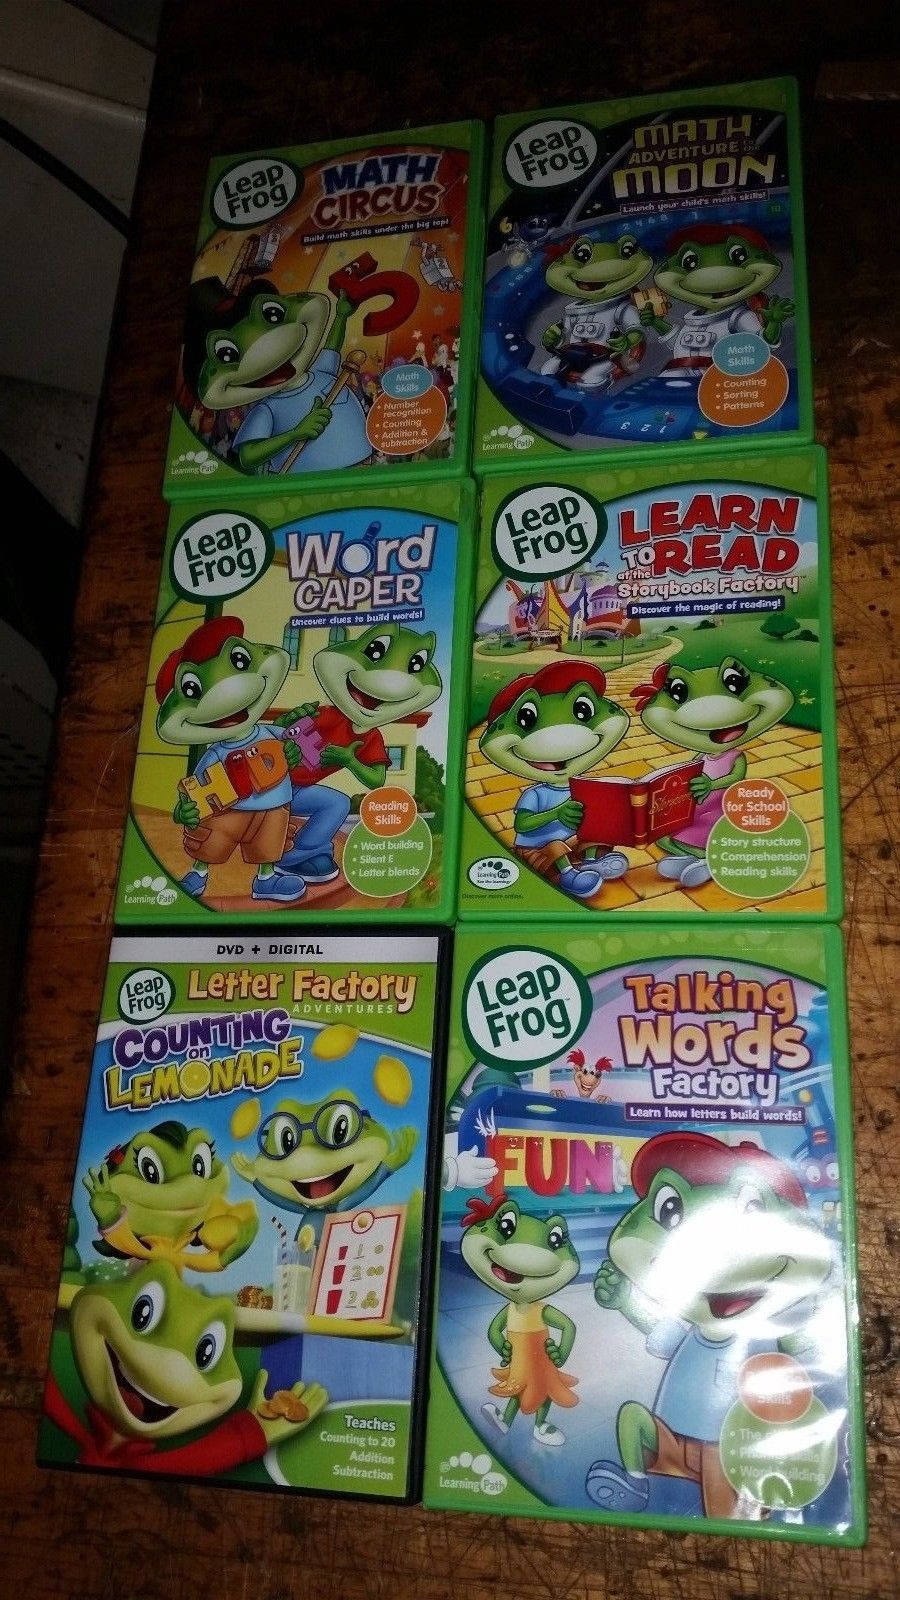 BIG DVD LOT leap frog math circus,moon word caper learn to read talking words et